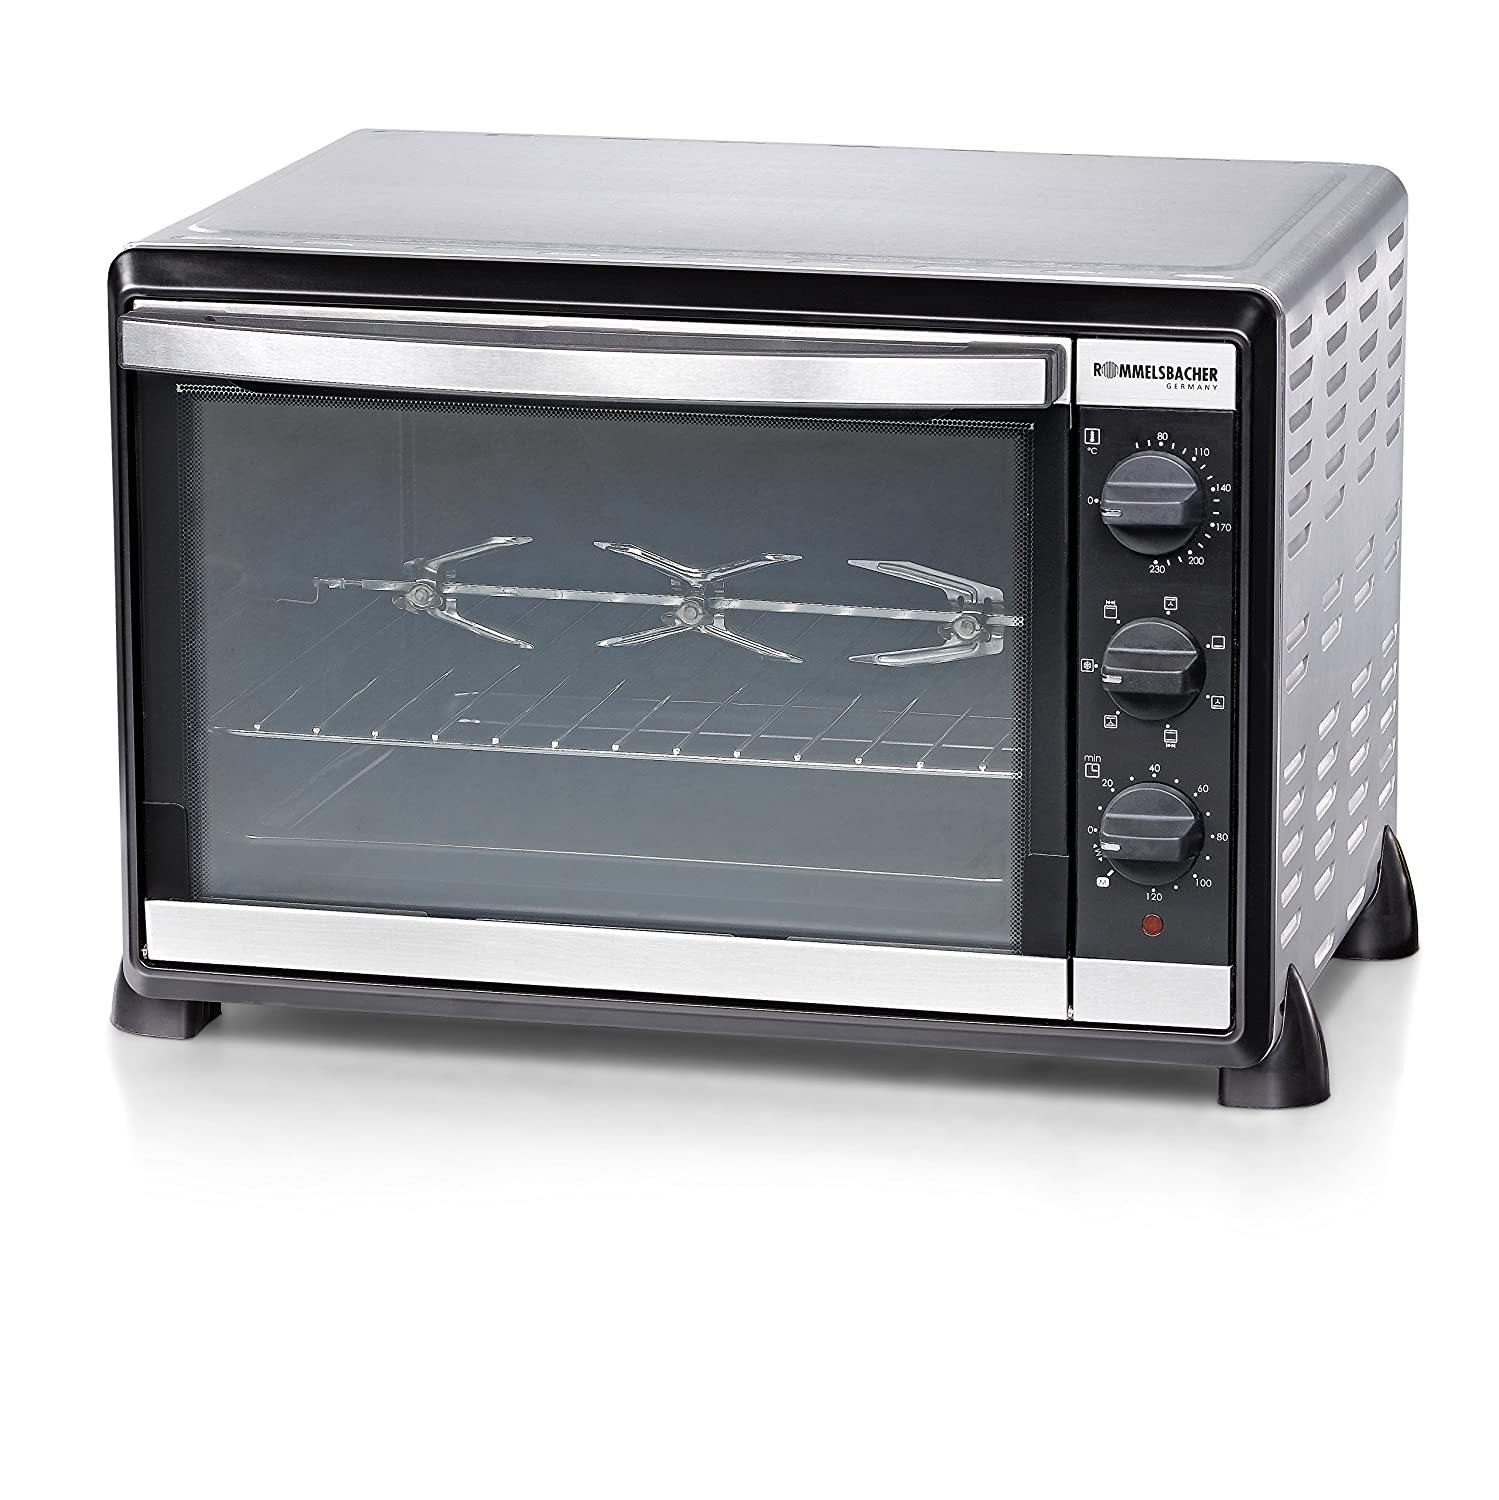 Rommelsbacher Stainless Steel Baking Oven and Rotisserie Grill